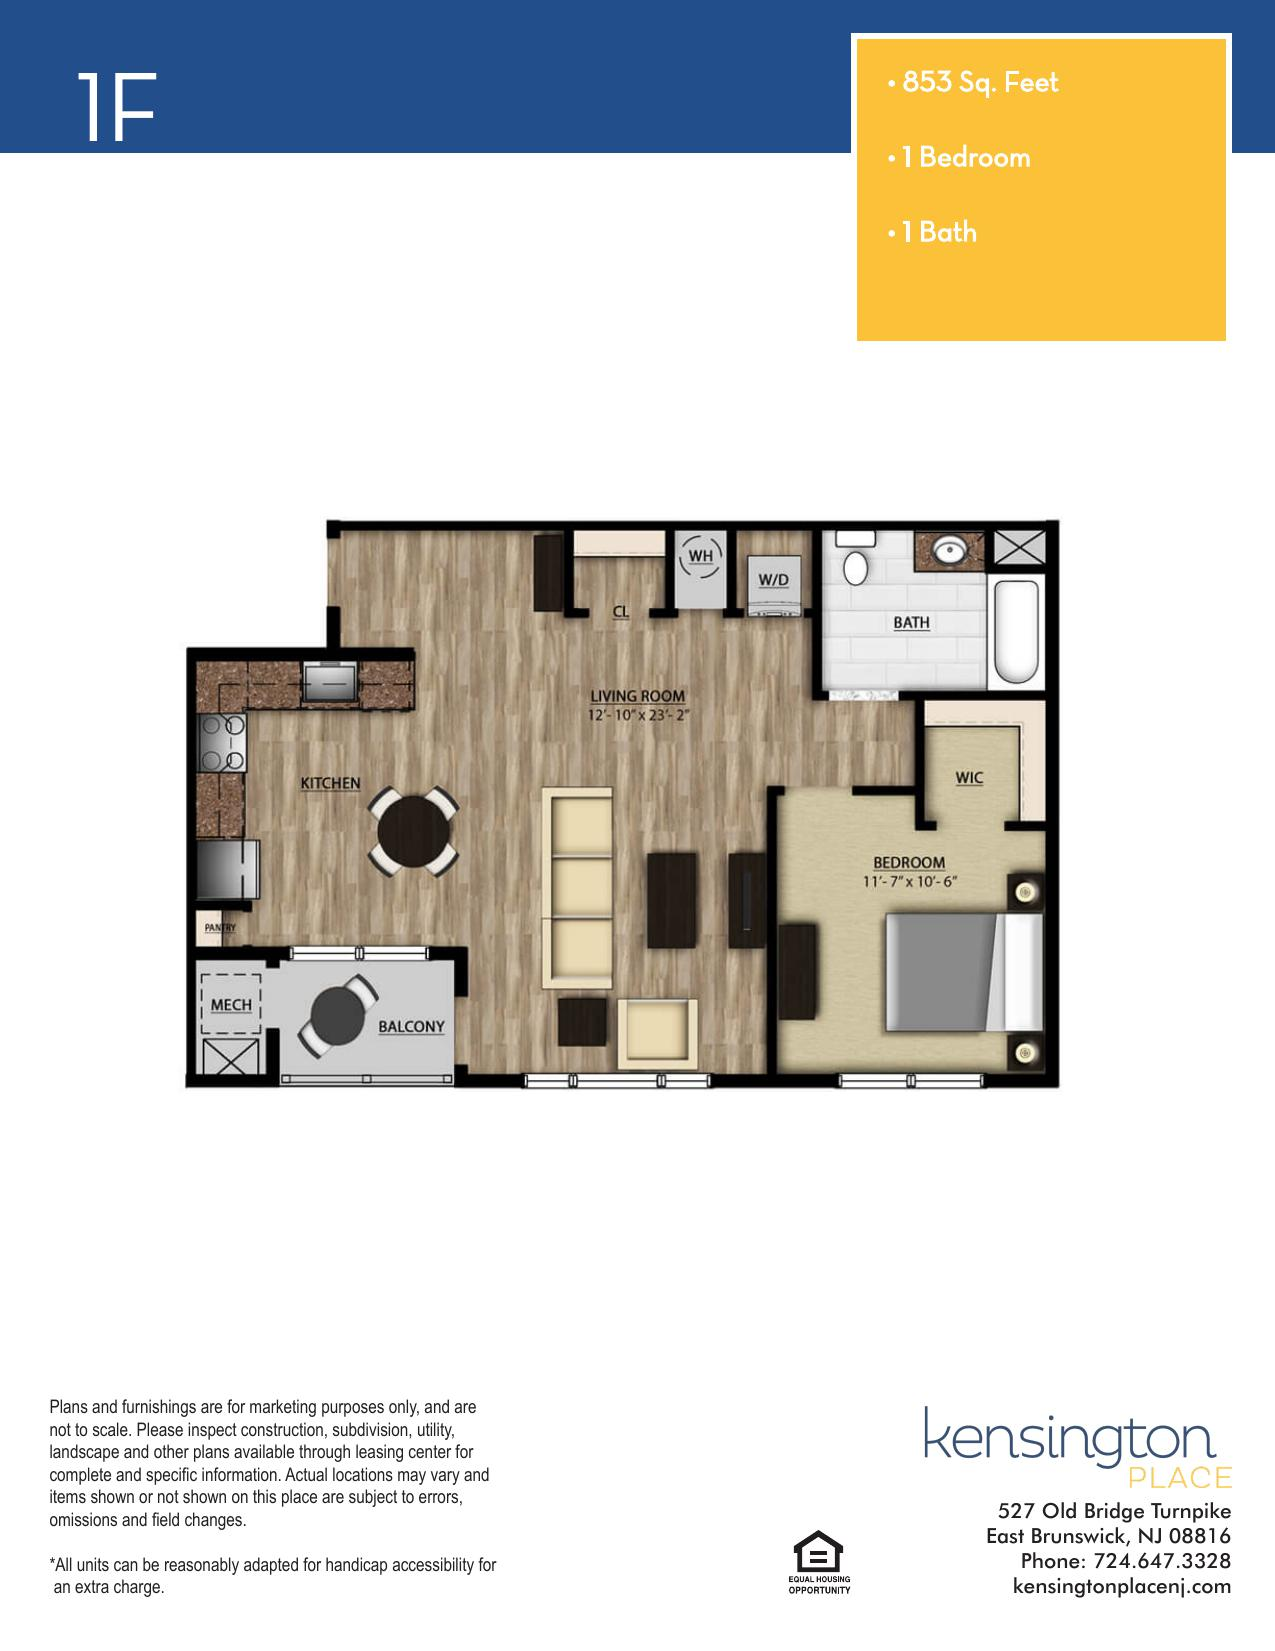 Kensington Place Apartment Floor Plan 1F